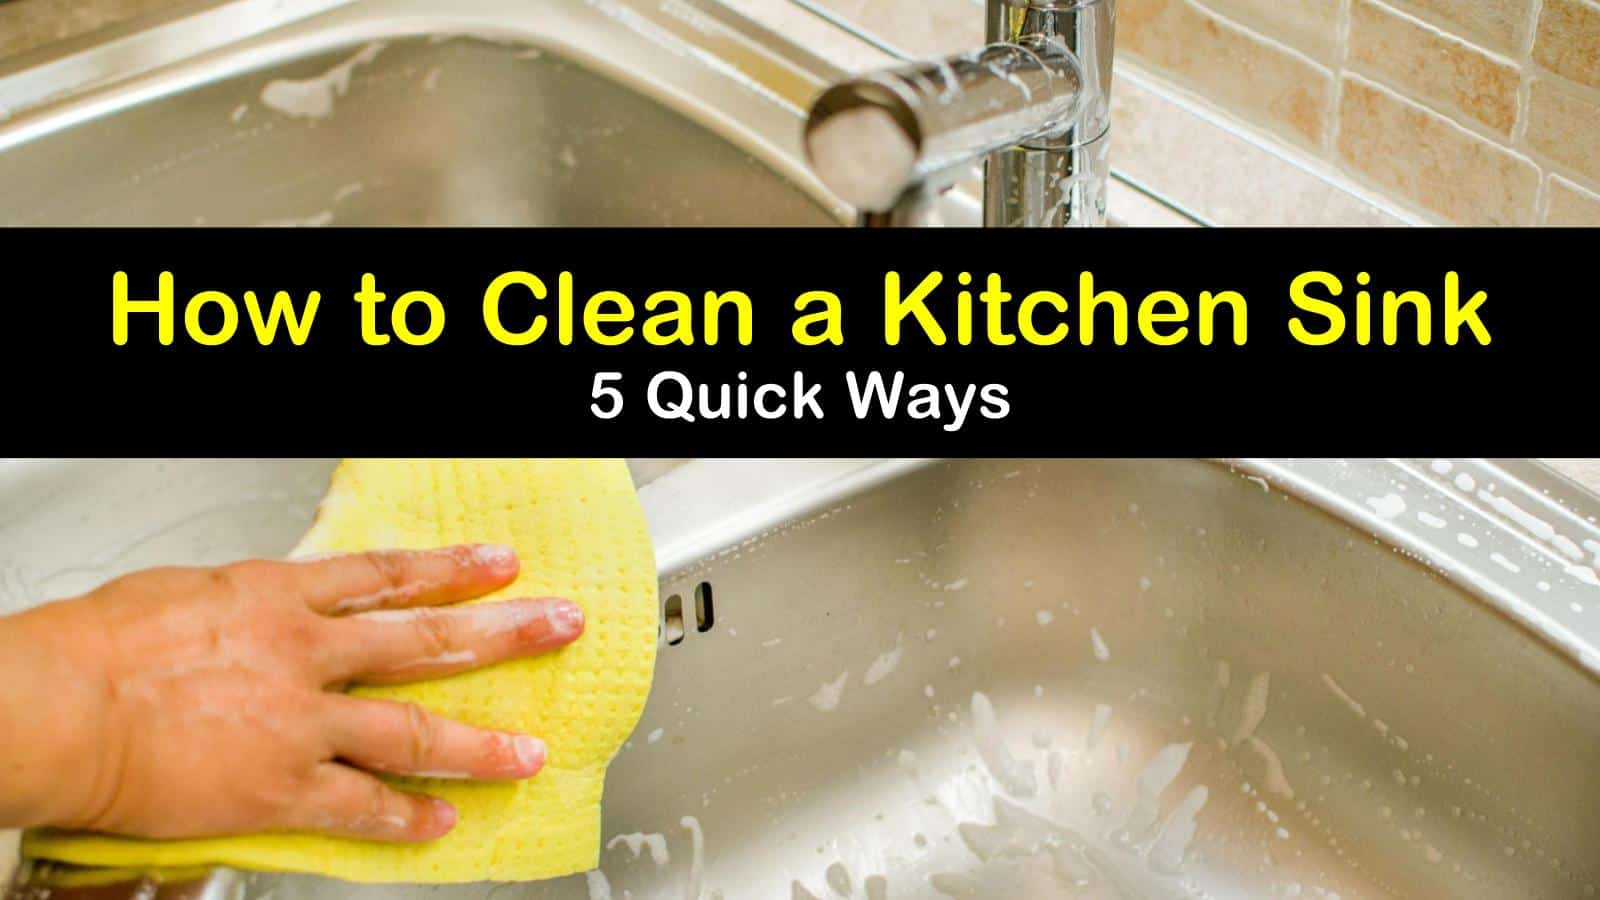 how to clean a kitchen sink titleimg1